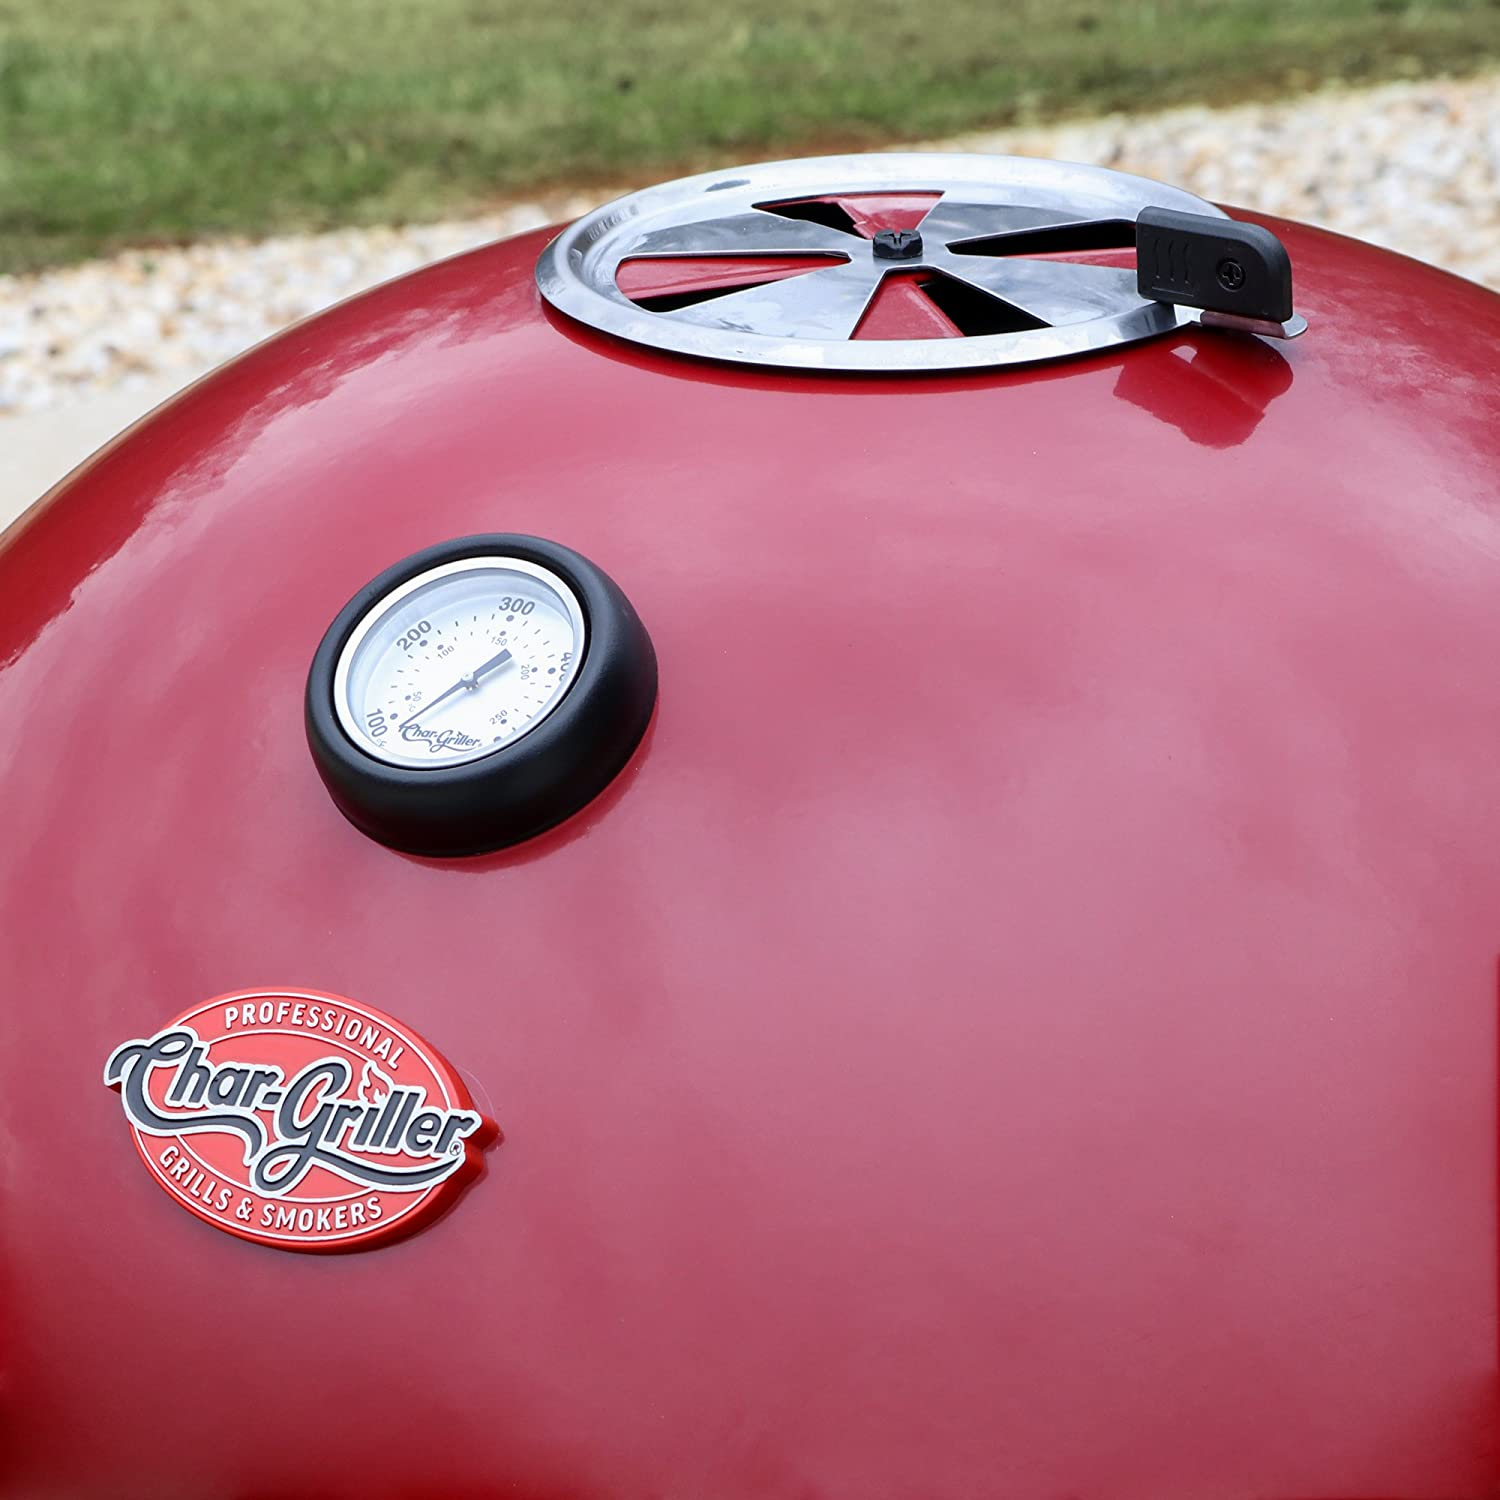 Char-Griller E14822 Premium Red Kettle Charcoal Grill and Smoker